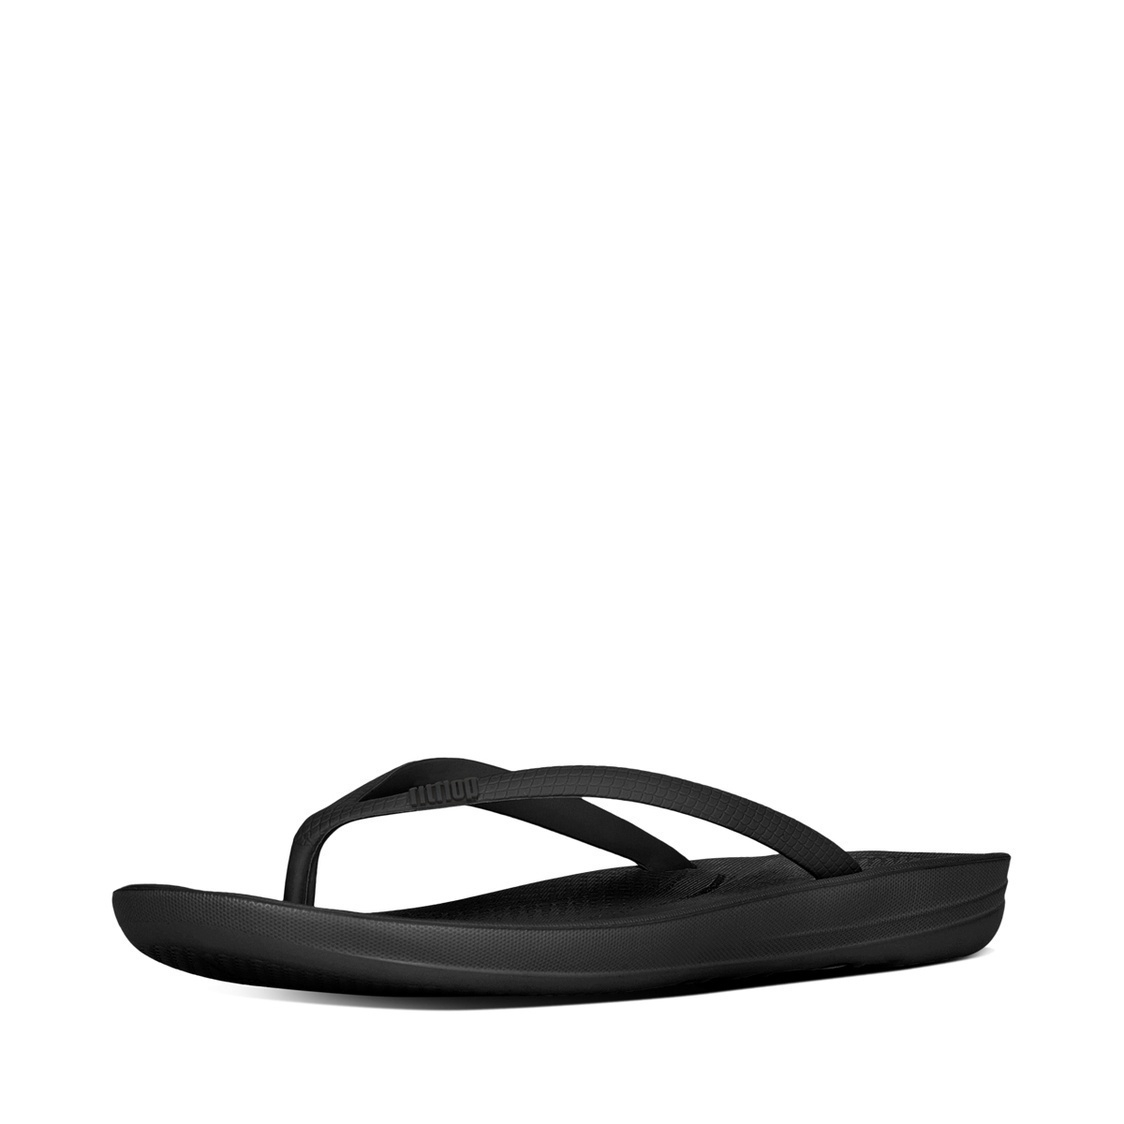 Iqushion Ergonomic Flip-Flops